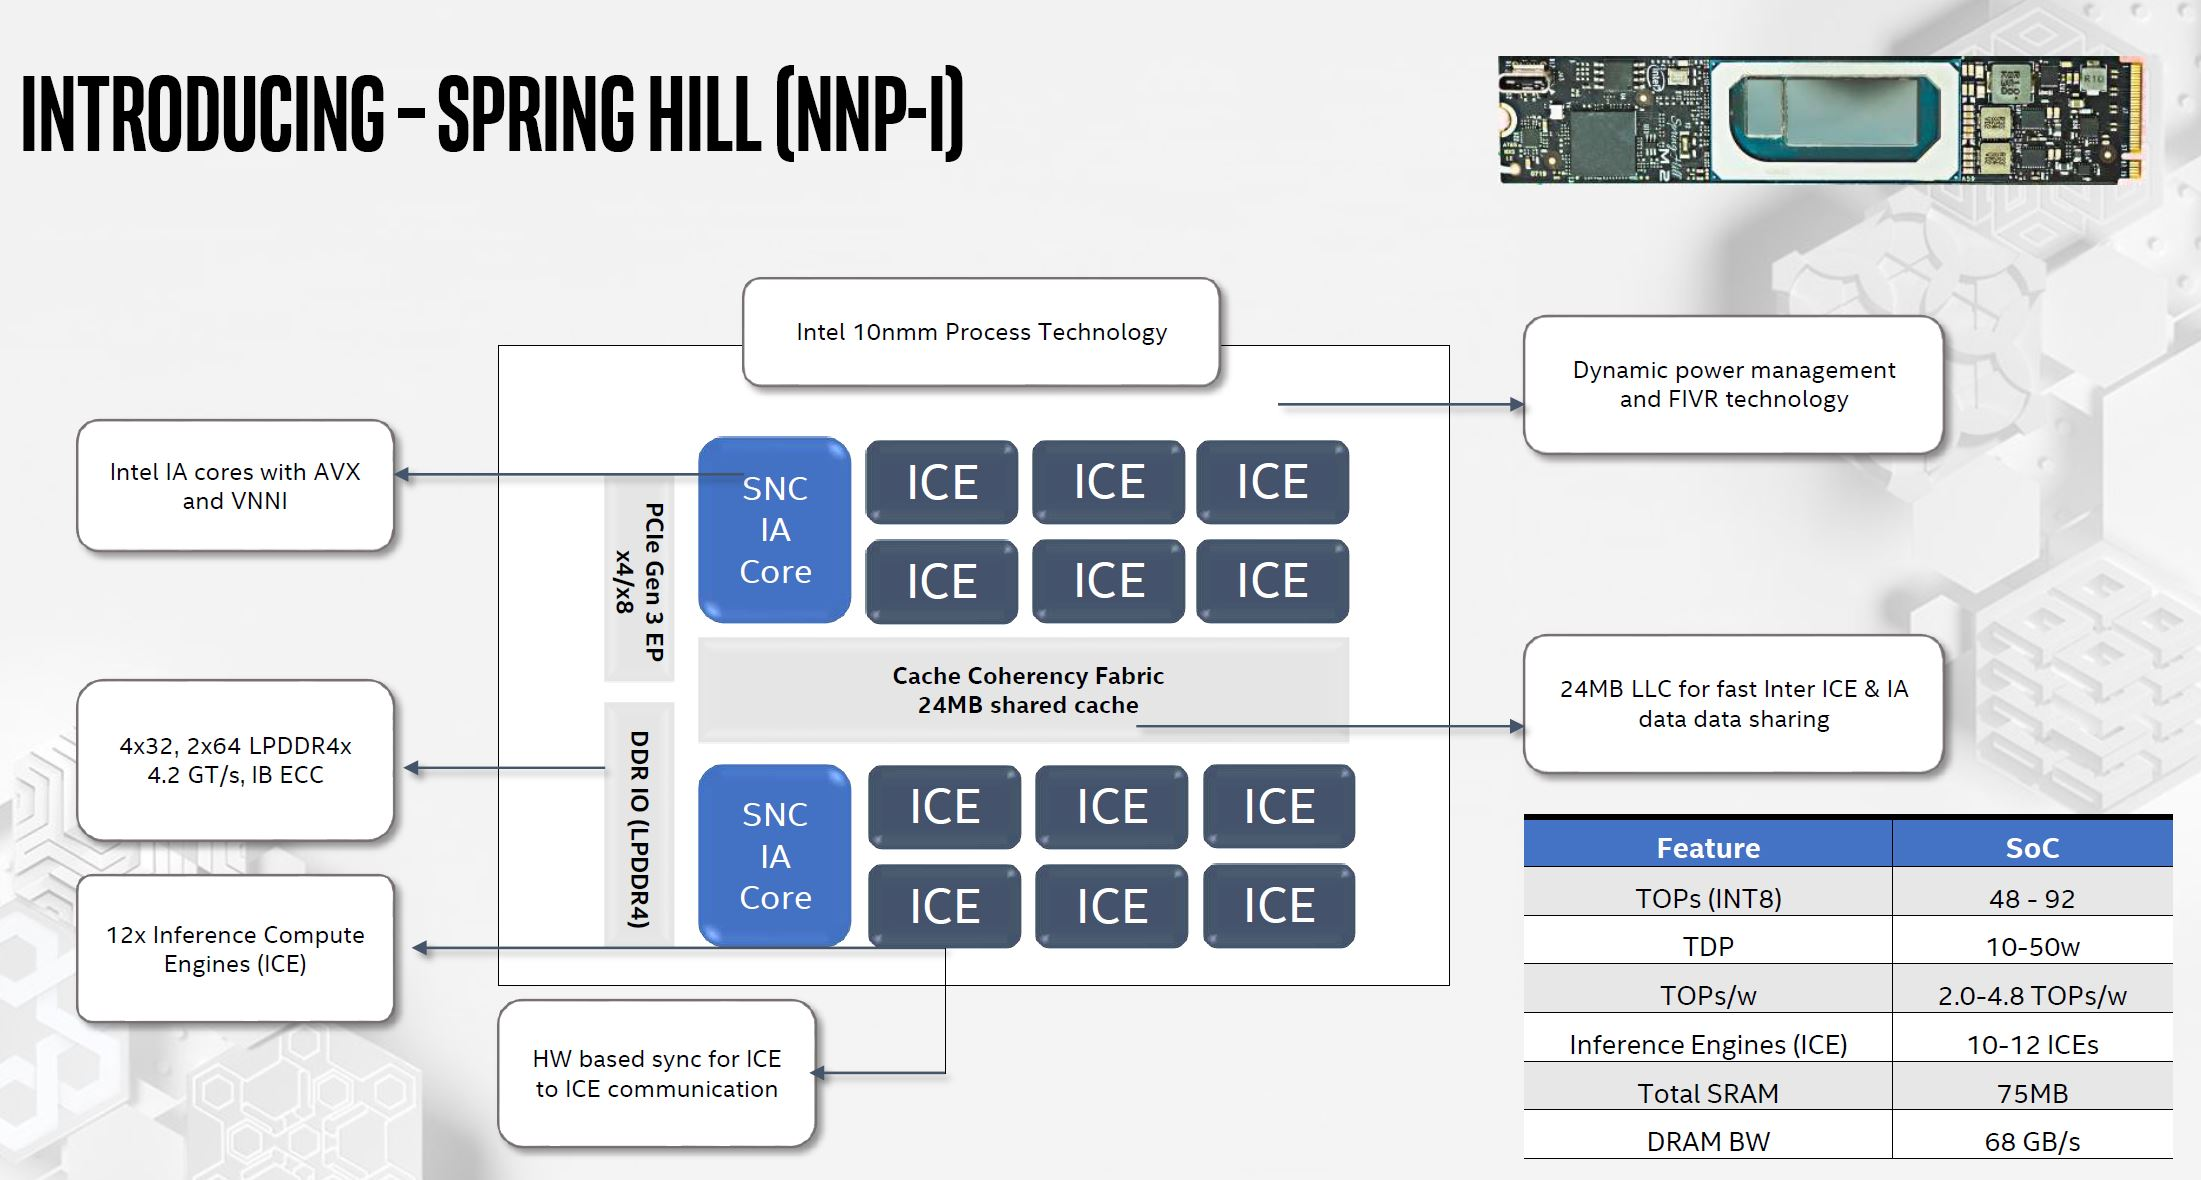 Intel NNP I 1000 Spring Hill Overview